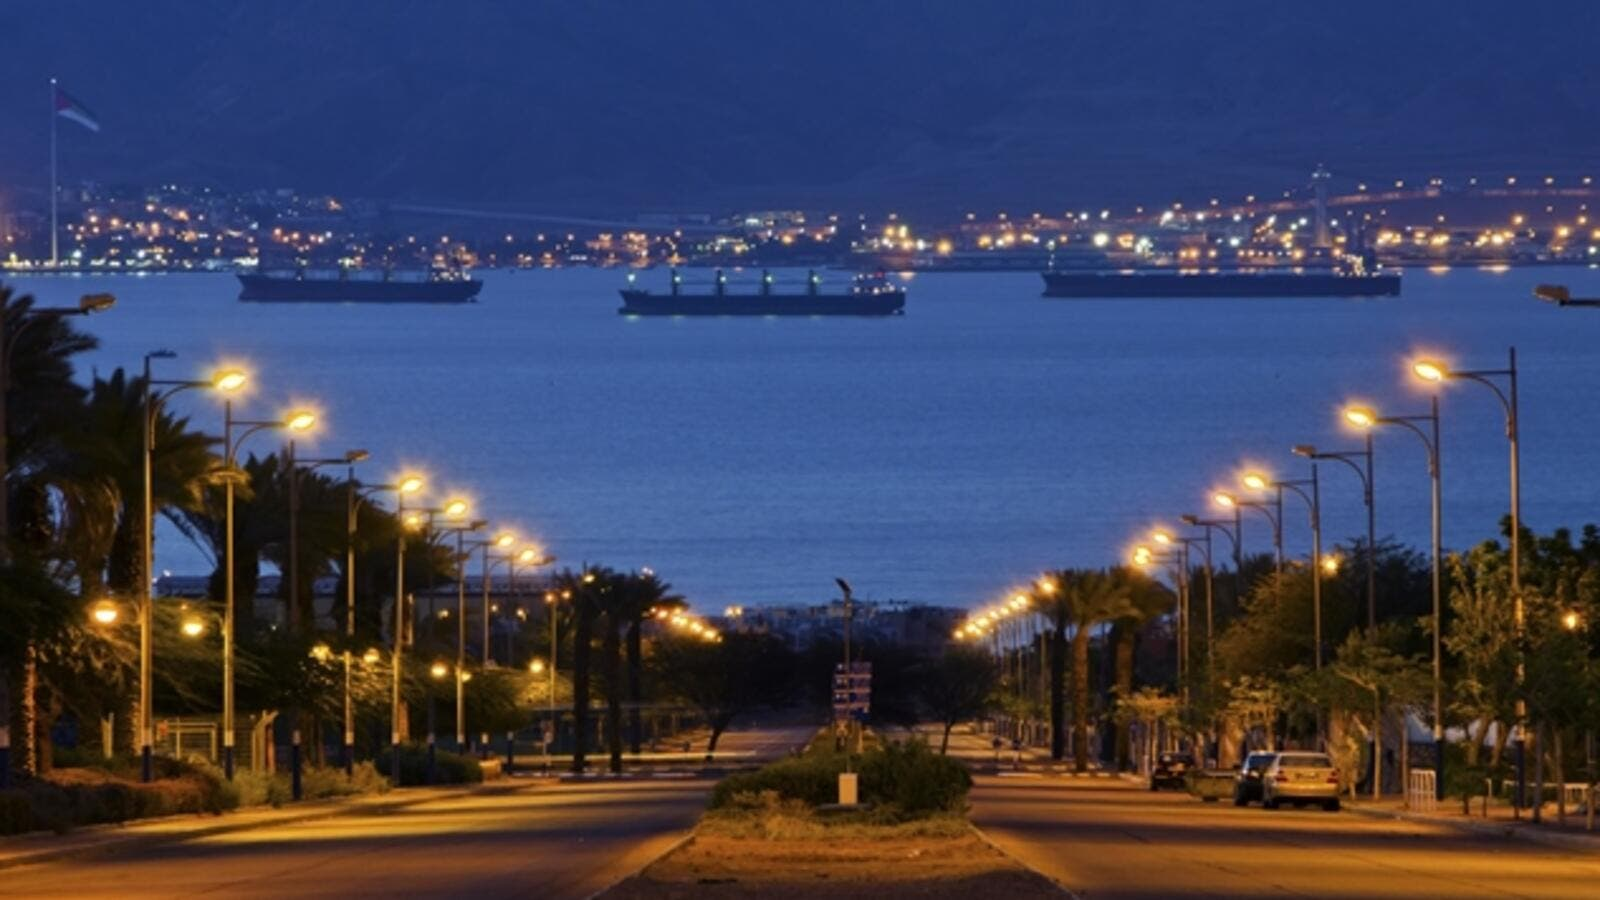 The new Aqaba port will begin its operations mid-2018. (Shutterstock)